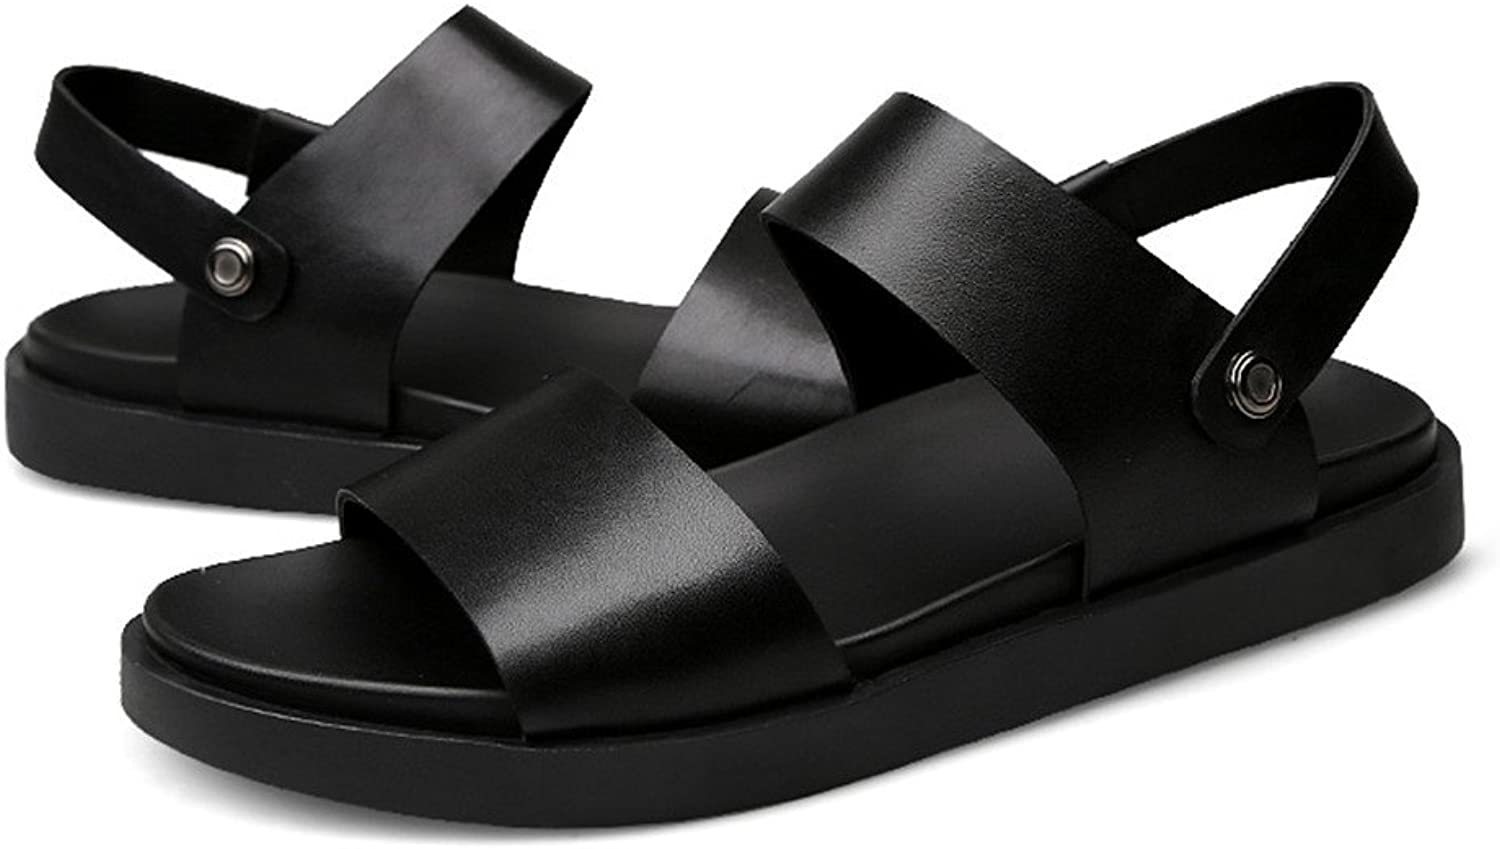 XUJW-Sandals, Men's Summer Matte Genuine Leather Beach Slippers Casual Non-Slip Sole Black Sandals,Perfect for The Beach Or Any Outdoor Scene.